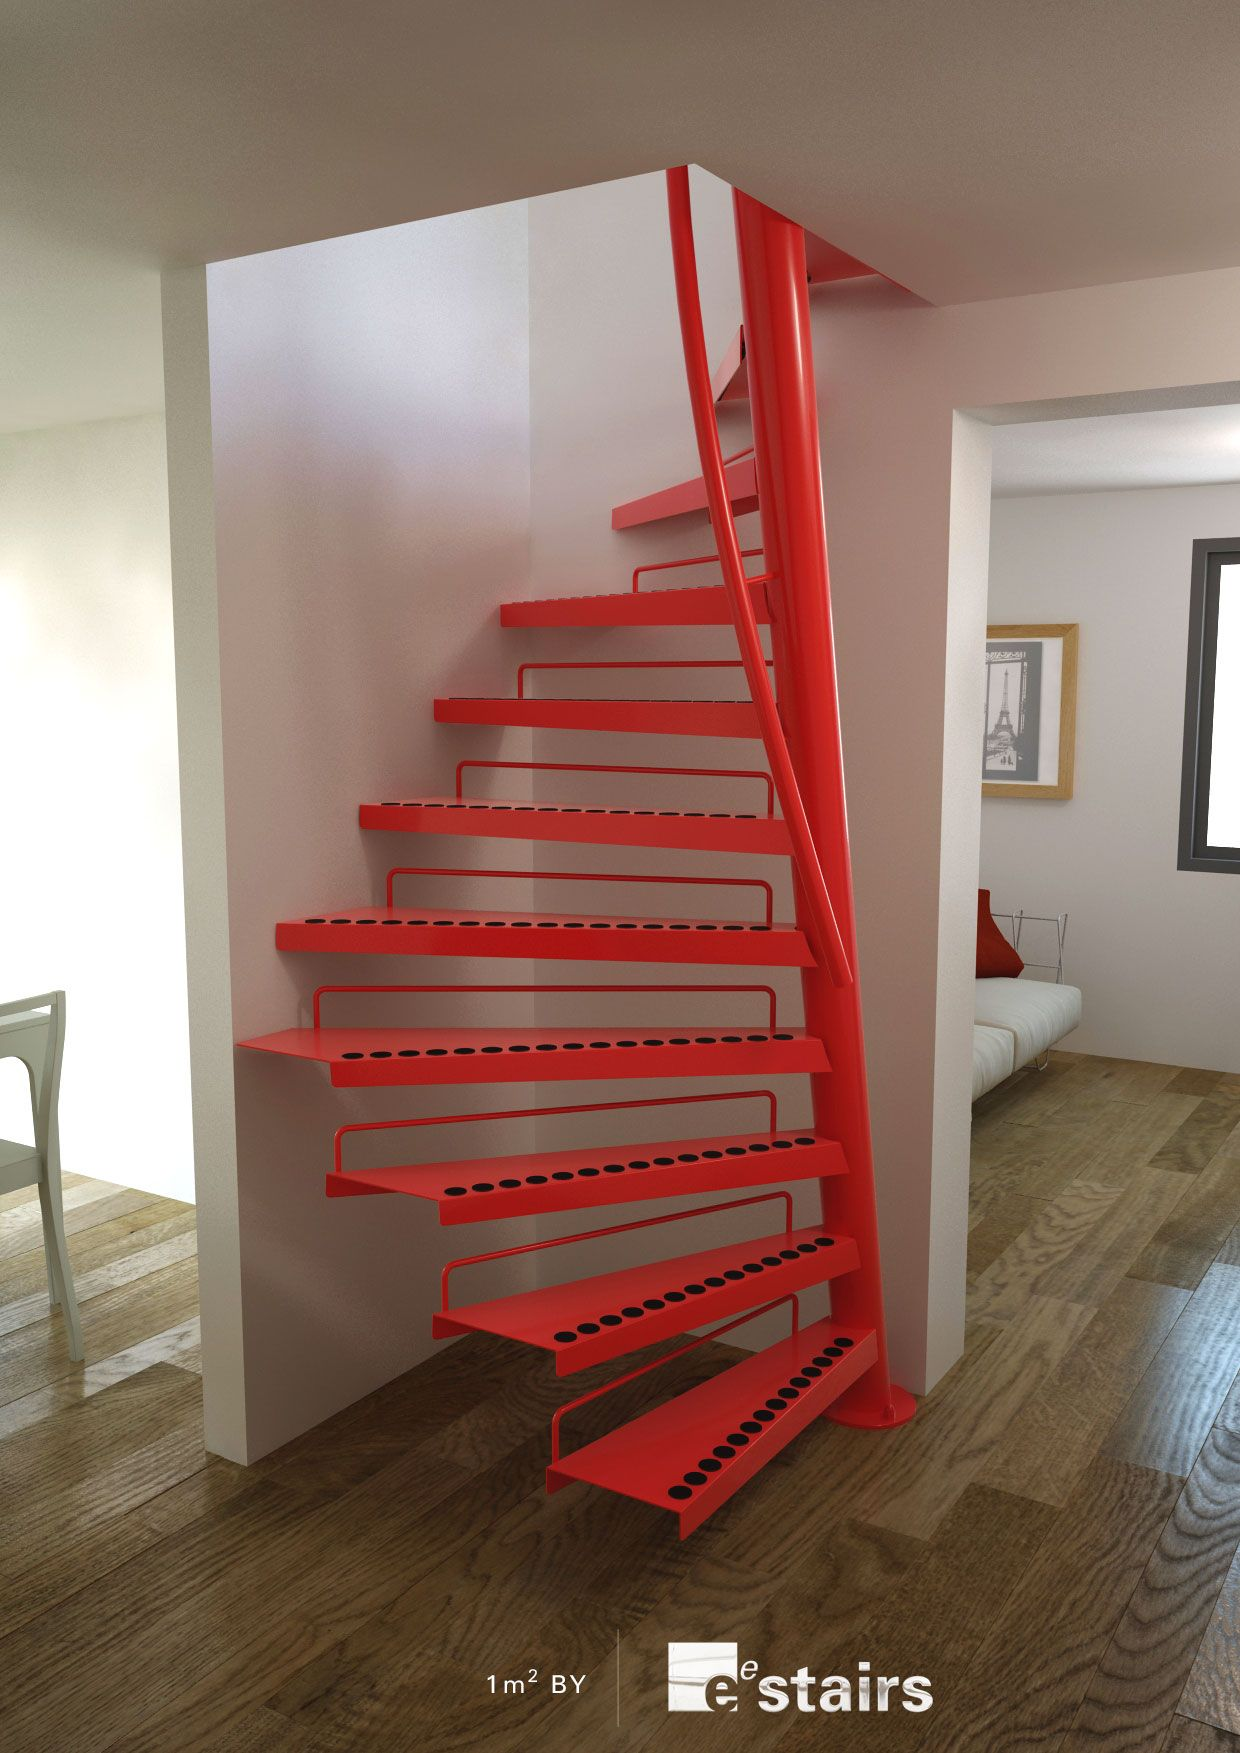 Best 1M² ™ With Riser Bars For Uk Regulations Small Staircase 400 x 300